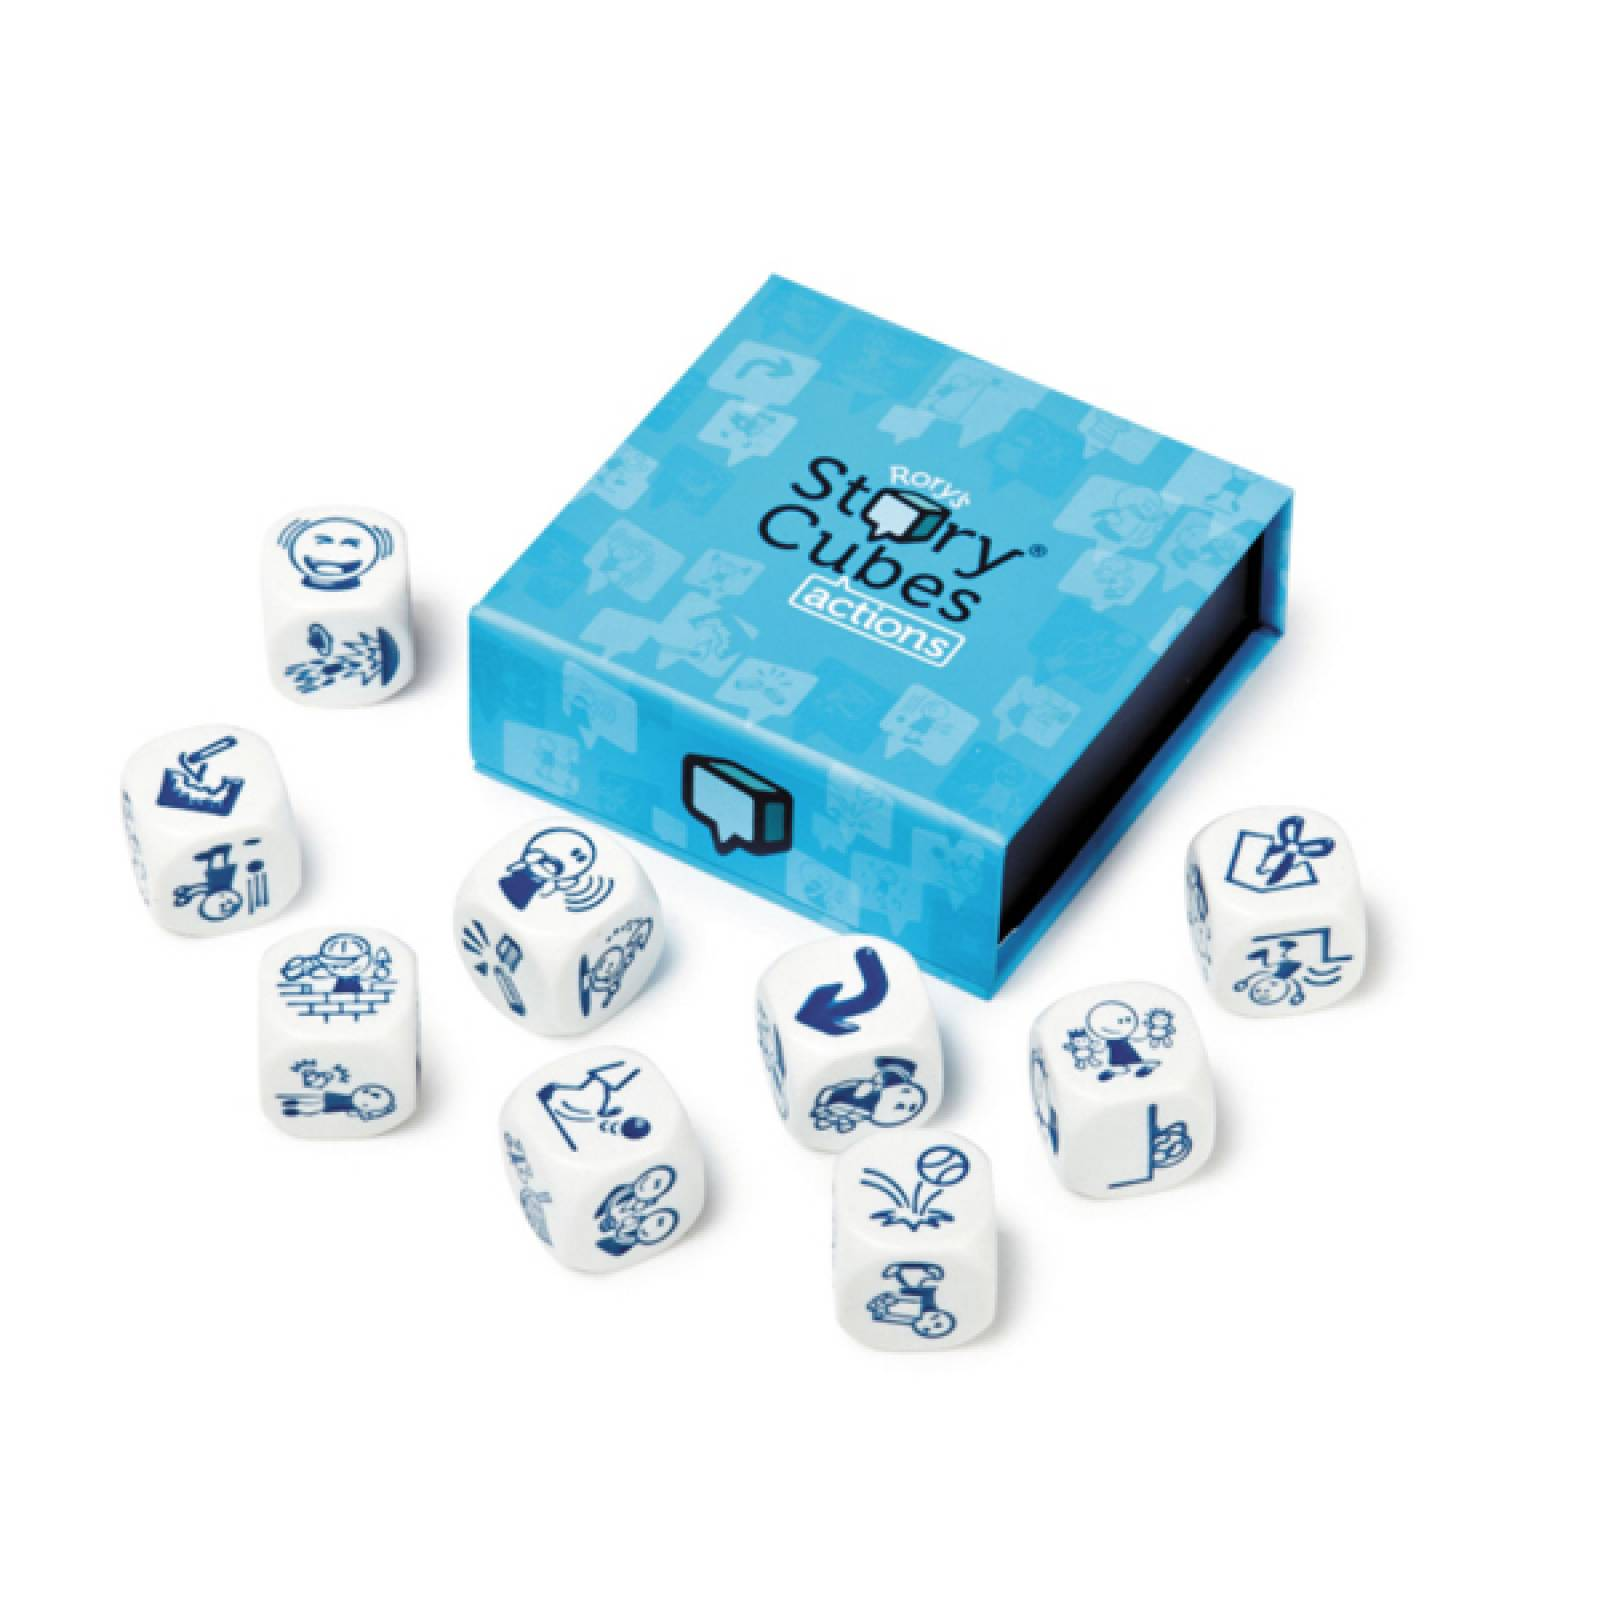 Rory's Story Cubes - Actions 6+